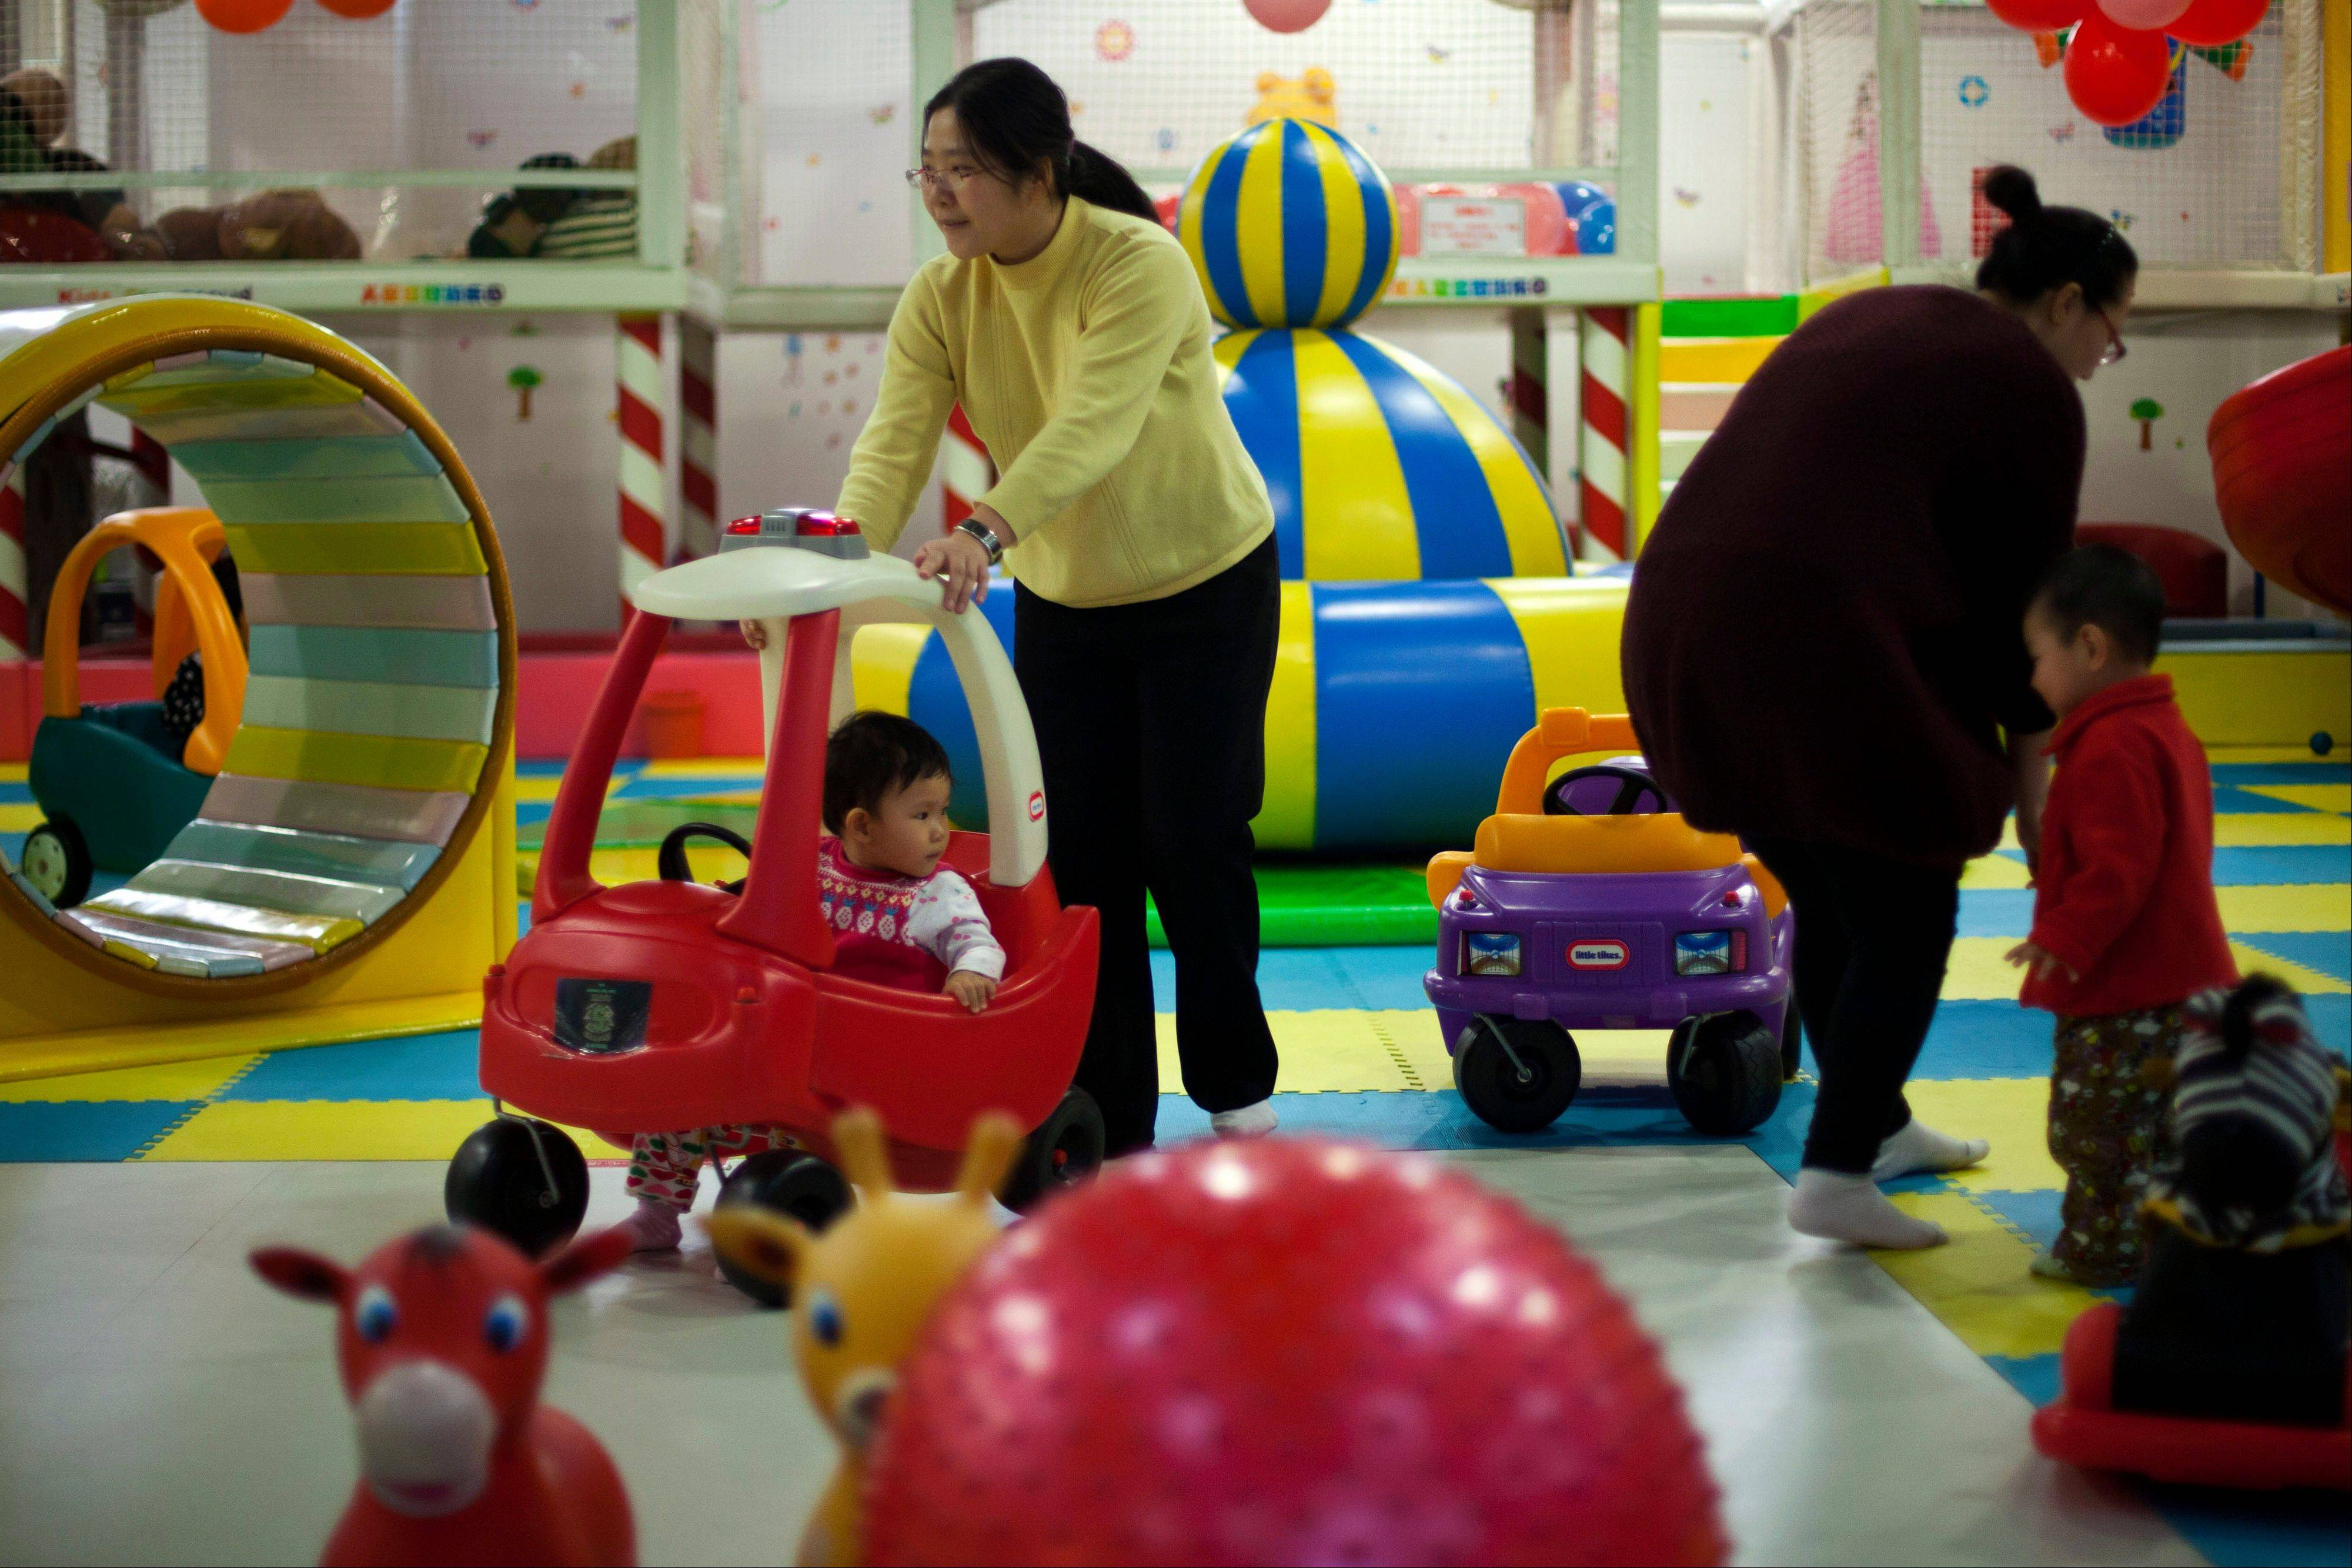 China will loosen its decades-old one-child policy and abolish a much-criticized labor camp system, its ruling Communist Party said Friday, Nov. 15, 2013. The official Xinhua News Agency said the party announced the changes in a policy document following a key, four-day meeting of party leaders that ended Tuesday in Beijing.